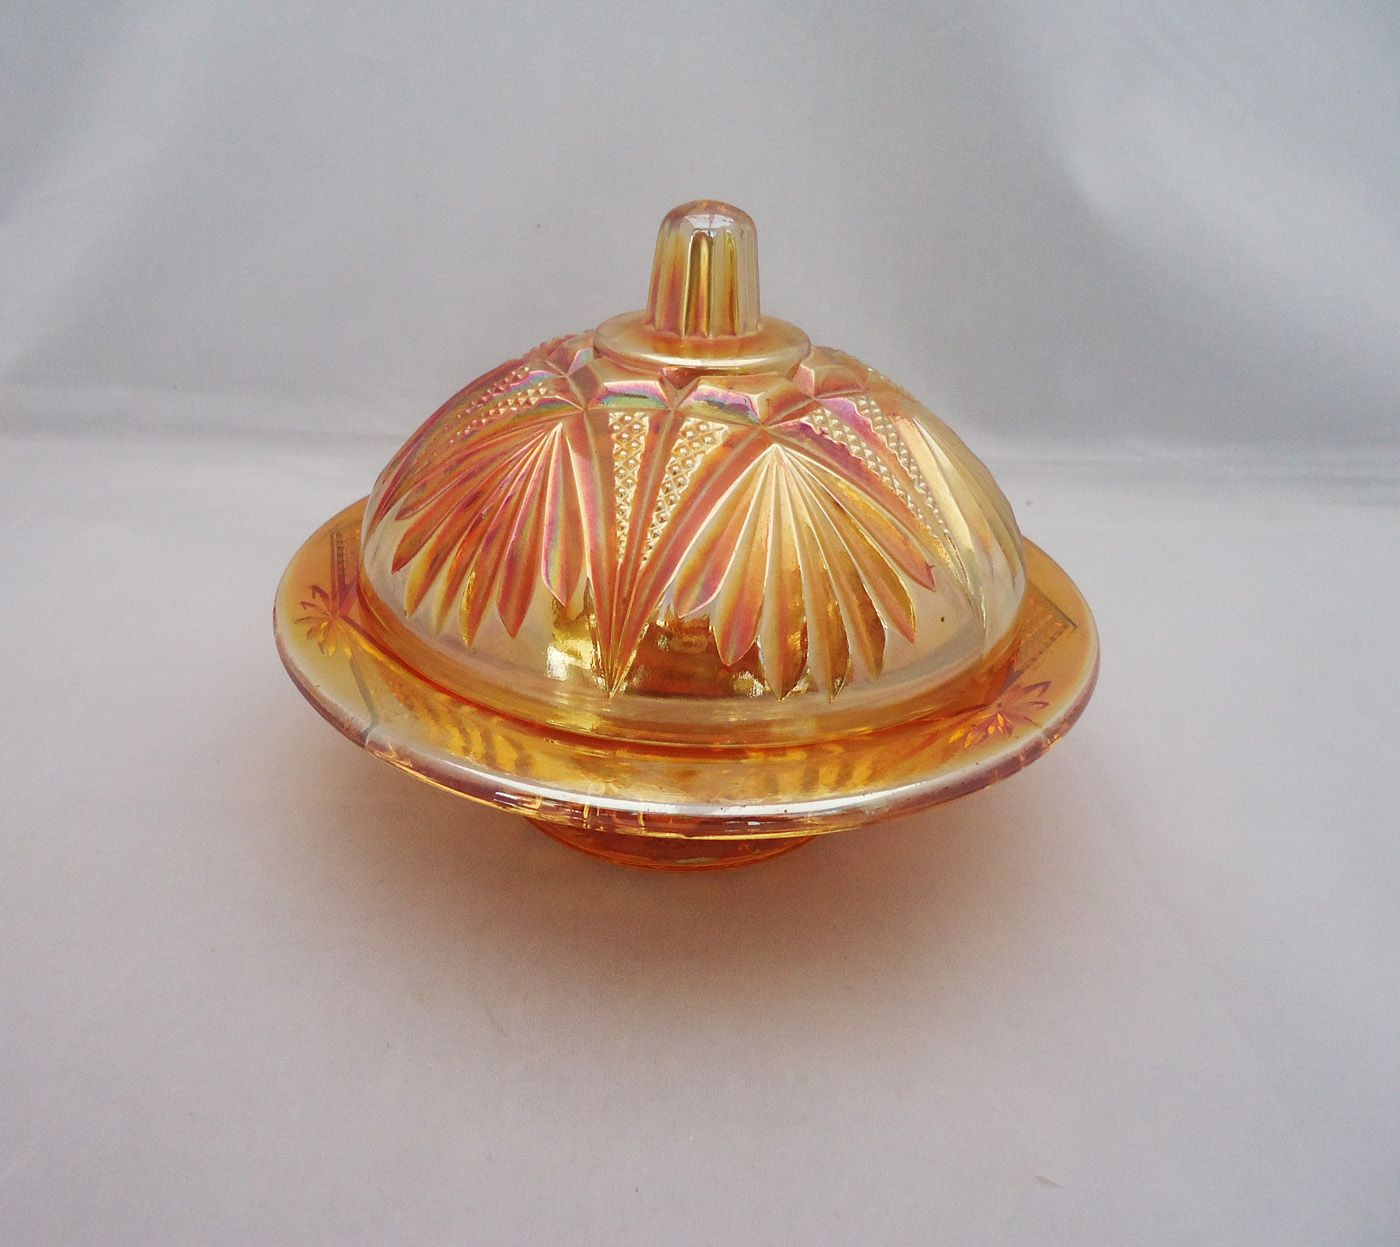 Vintage Carnival Glass Butter Dish Marigold Glass Dish By Carnival Glass Vintage Carnival Glass Dishes